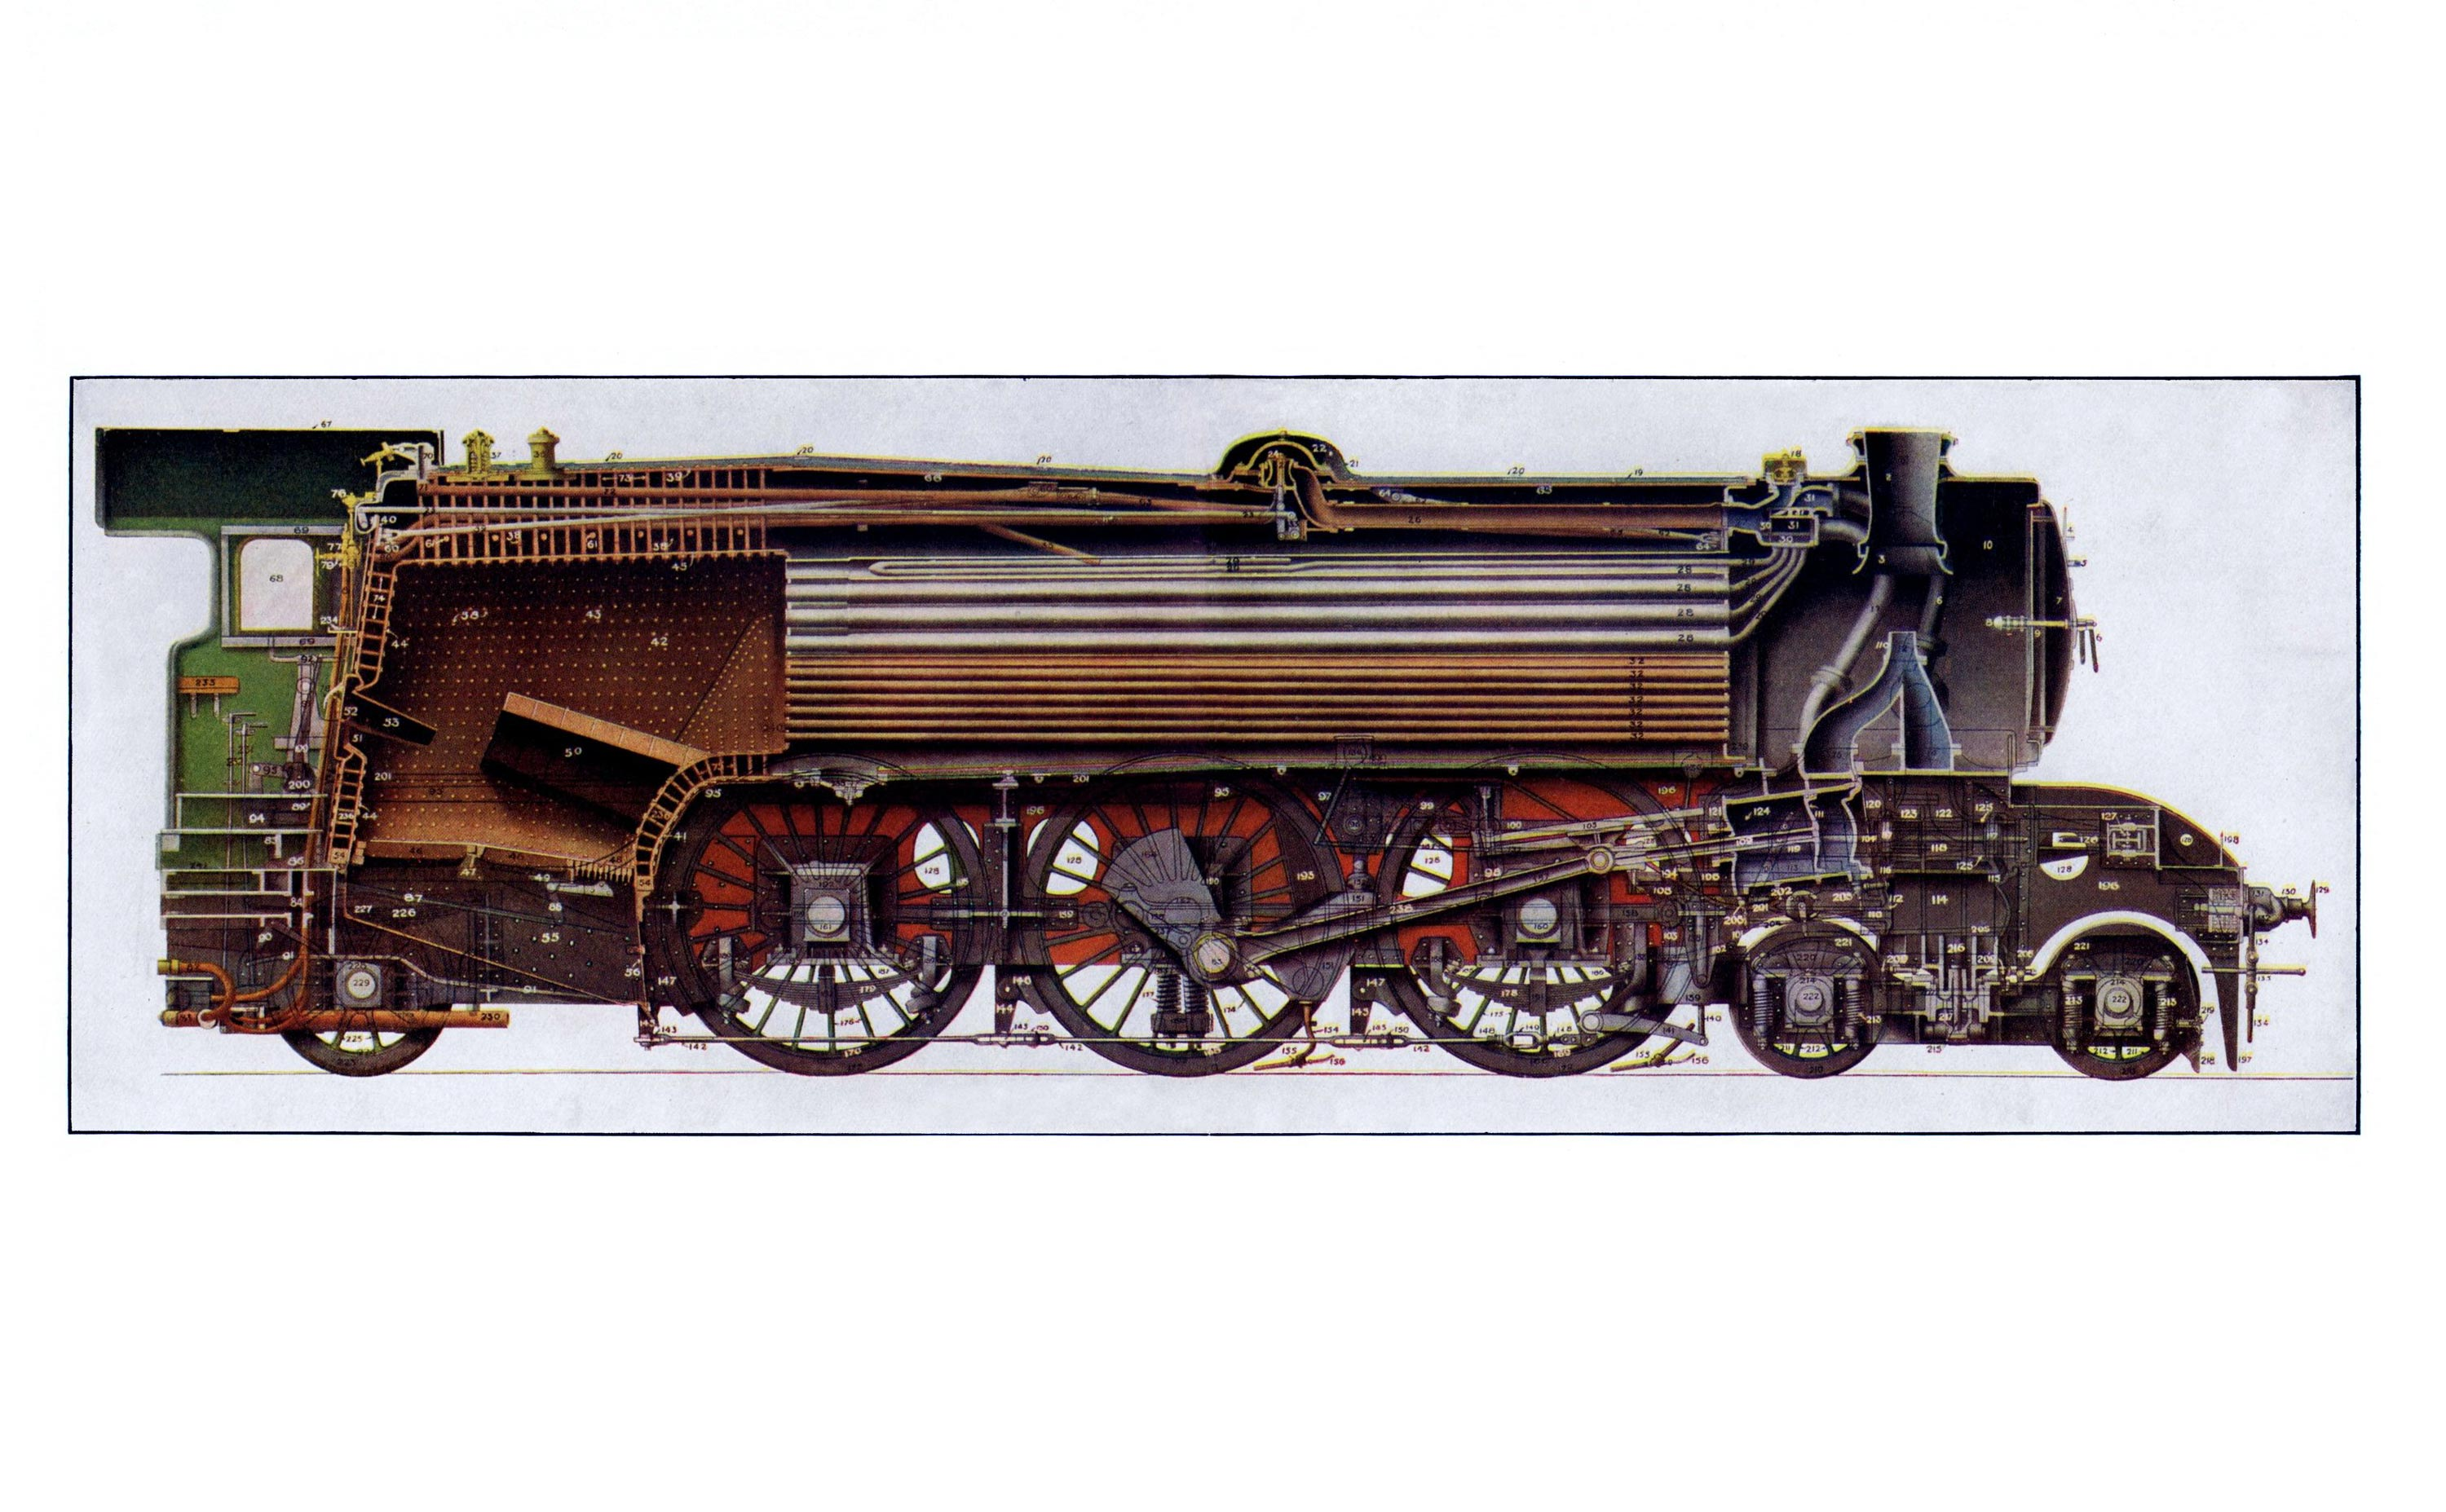 4-6-2 three-cylinder Pacific express locomotive cutaway